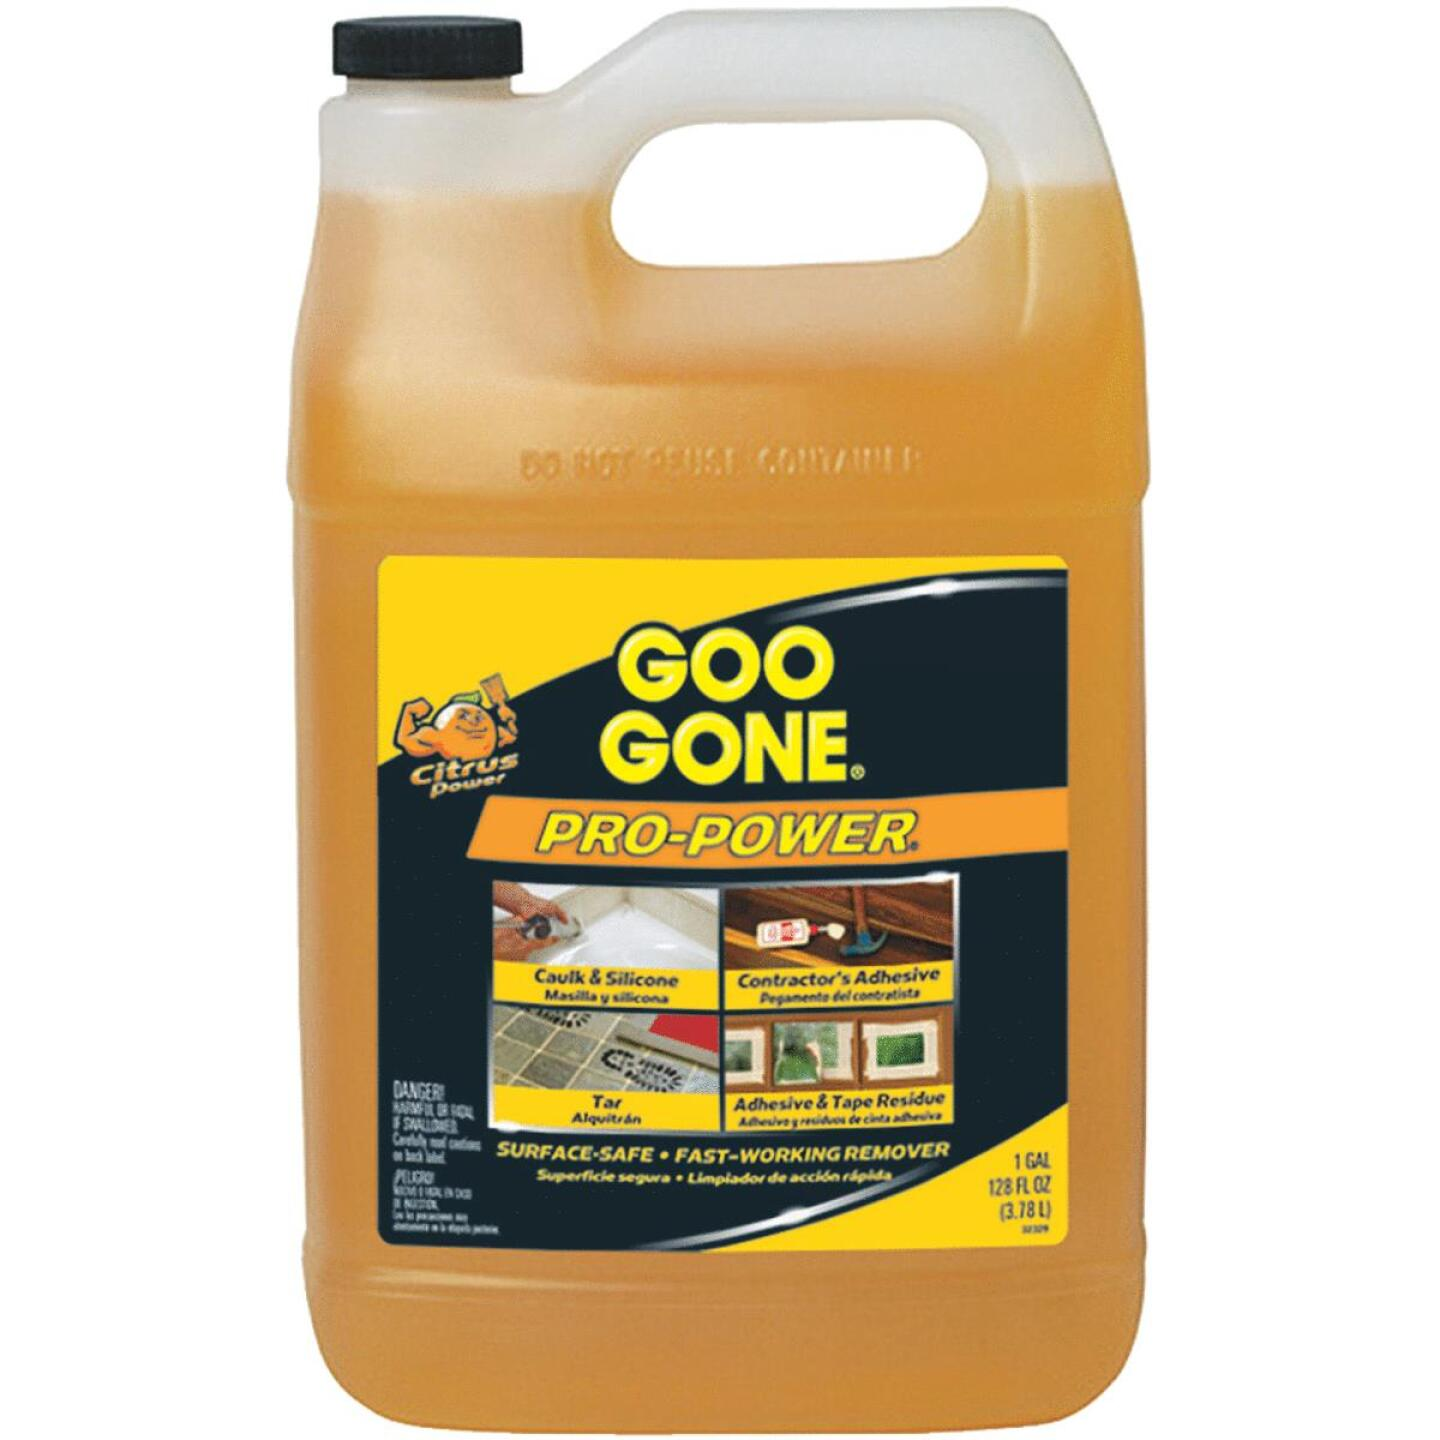 Goo Gone 1 Gal. Pro-Power Adhesive Remover Image 46